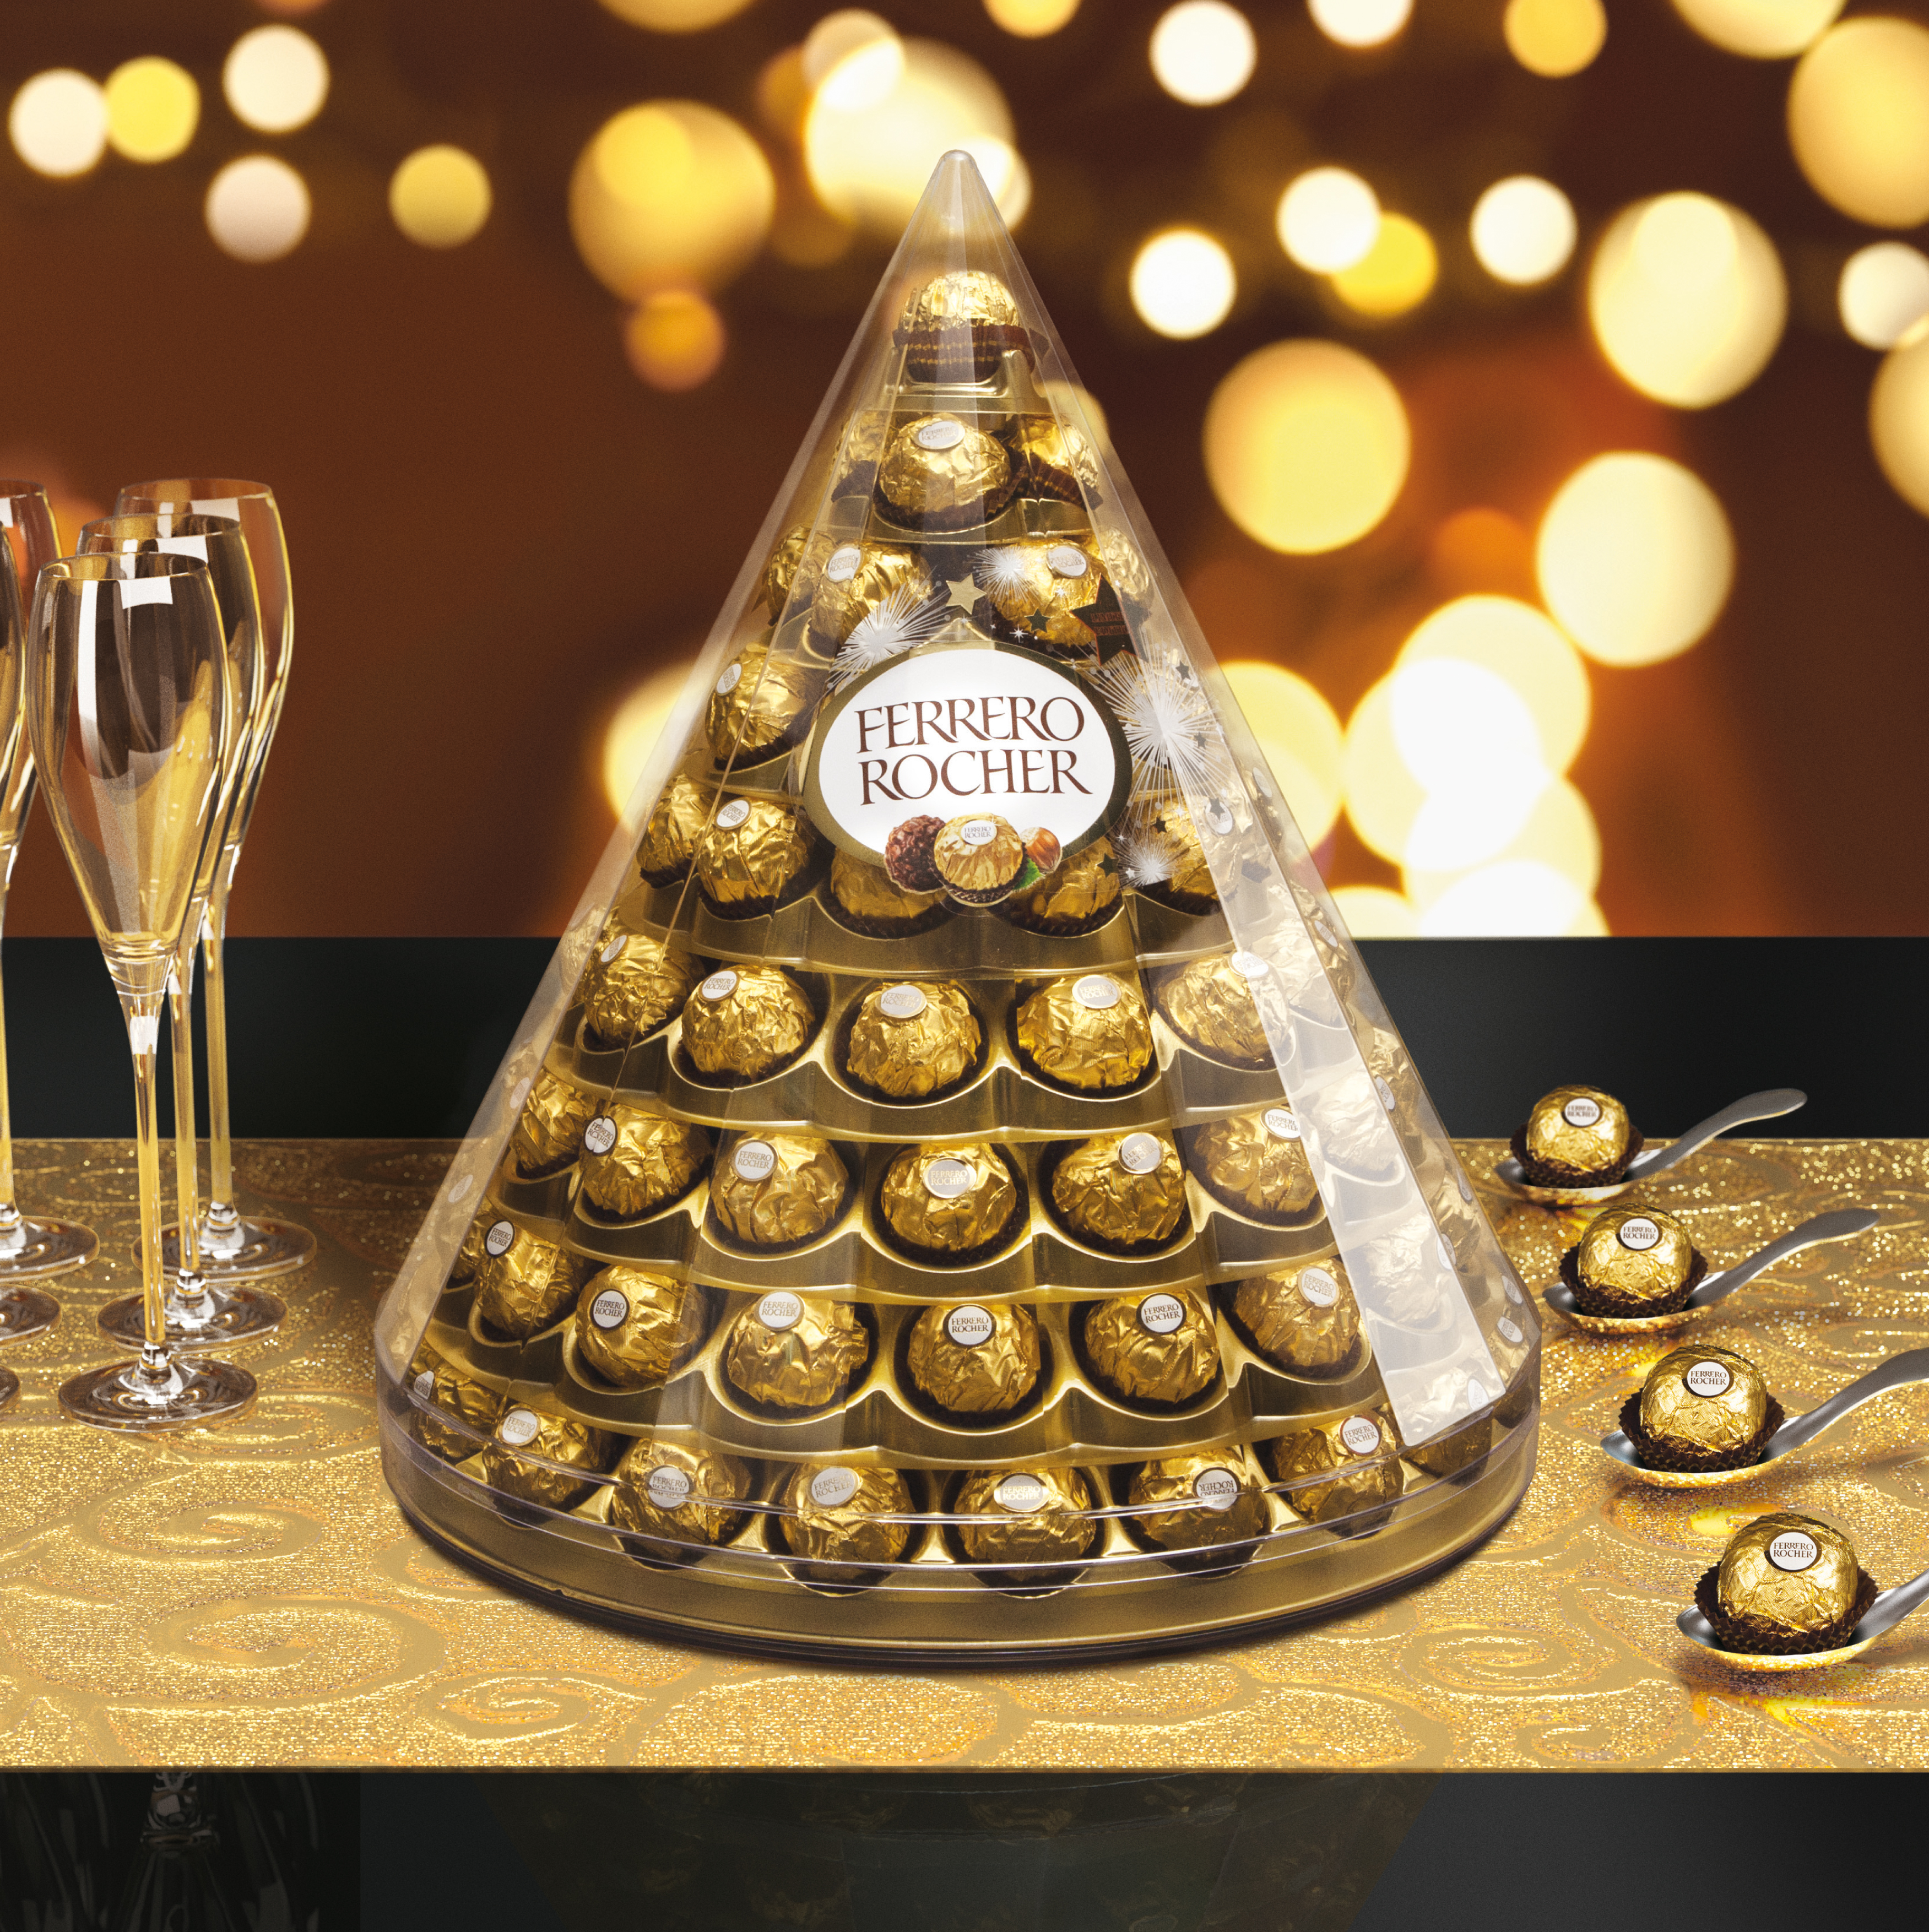 ferrero rocher reviews in chocolate   chickadvisor